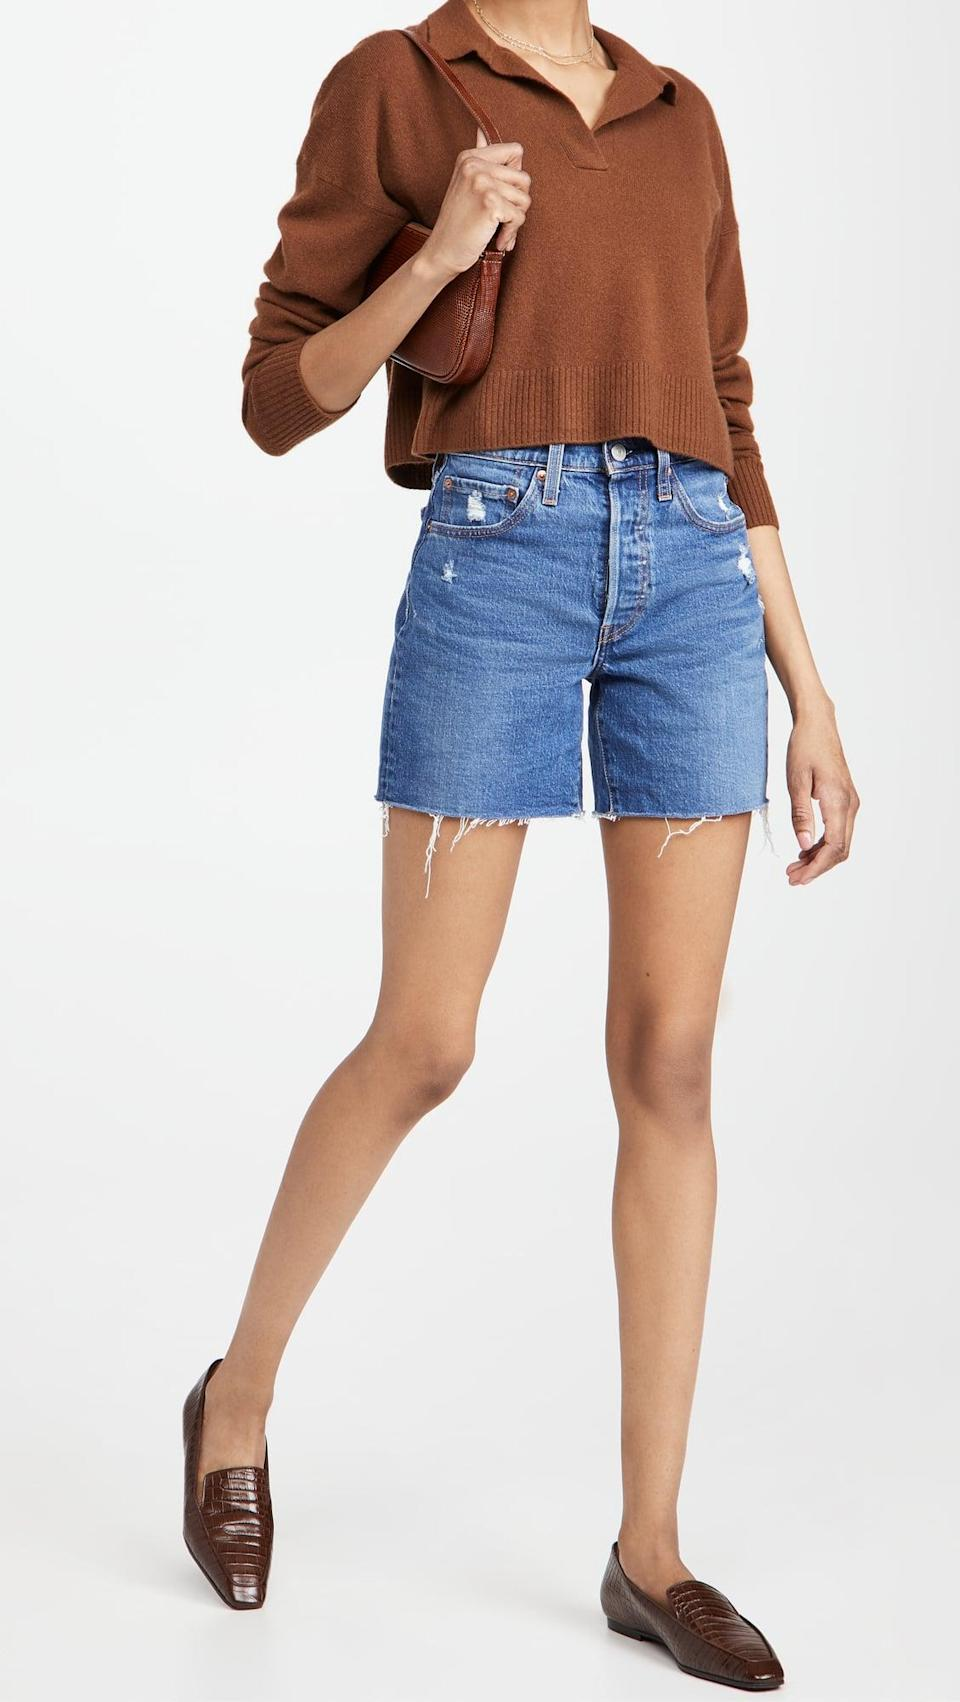 <p>If you're looking for a longer jean short this summer, go for these classic <span>Levi's 501 Mid Thigh Shorts</span> ($70).</p>